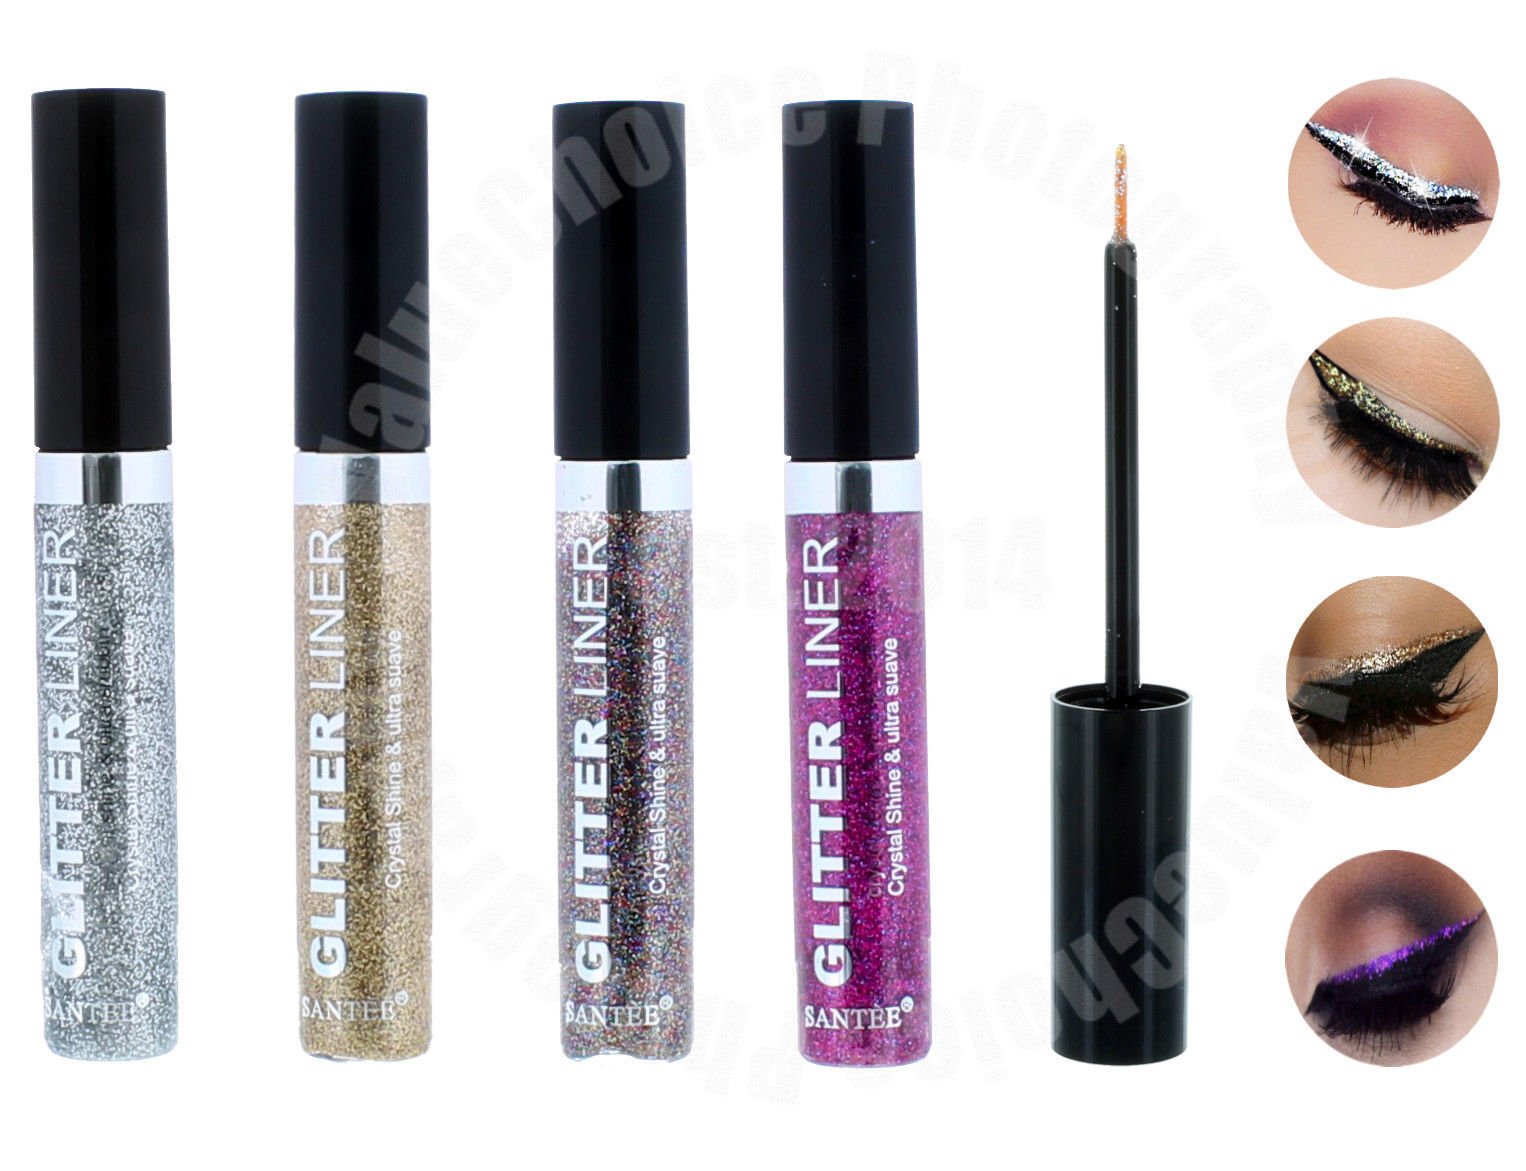 b567ee2a76d Santee Mascara: 2 listings